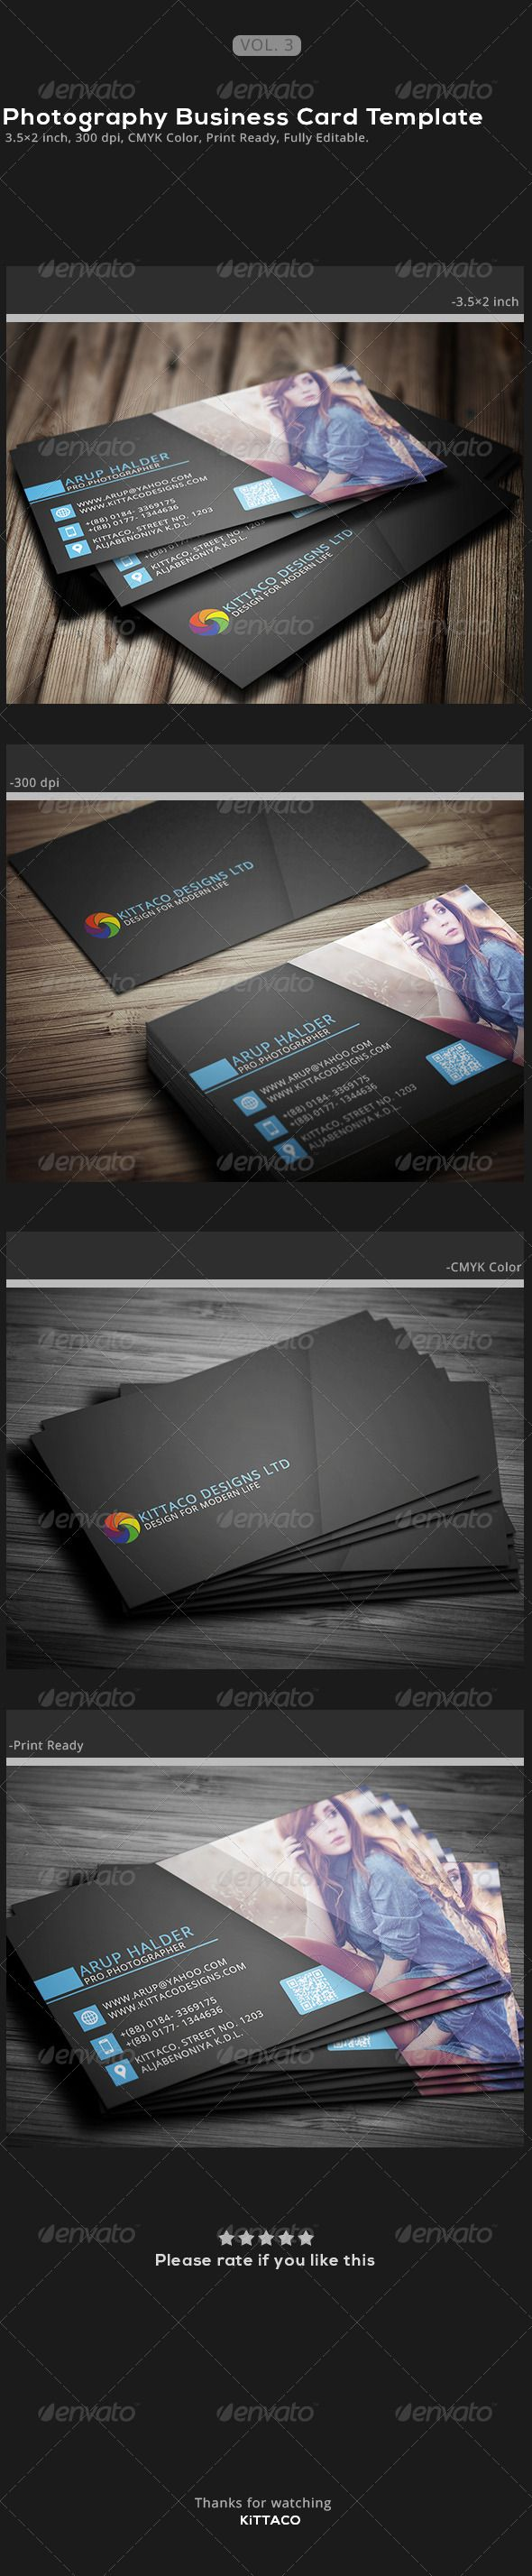 23 best Business Card Template images on Pinterest | Business ...